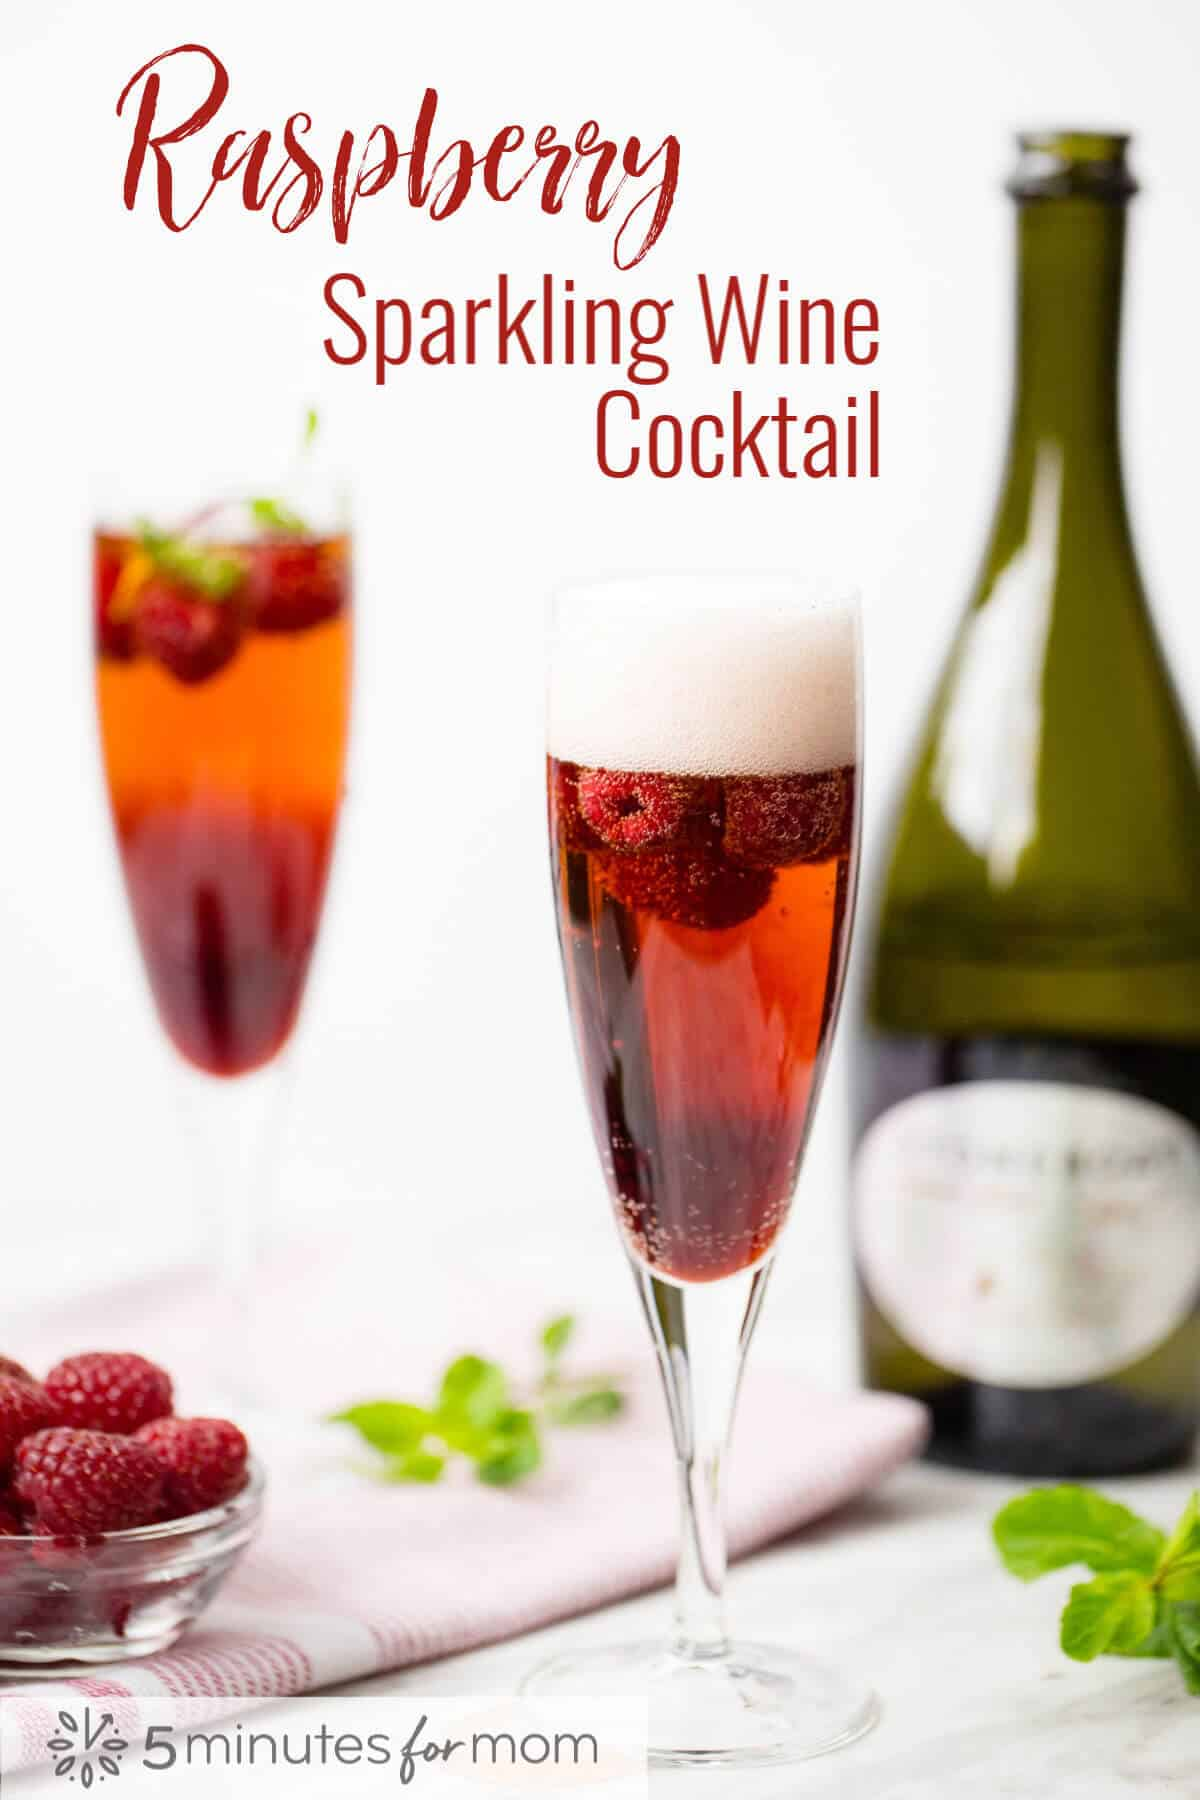 Raspberry Sparkling Wine Cocktail - How to make a delicious and stunning raspberry sparkling wine cocktail. #cocktail #sparklingwine